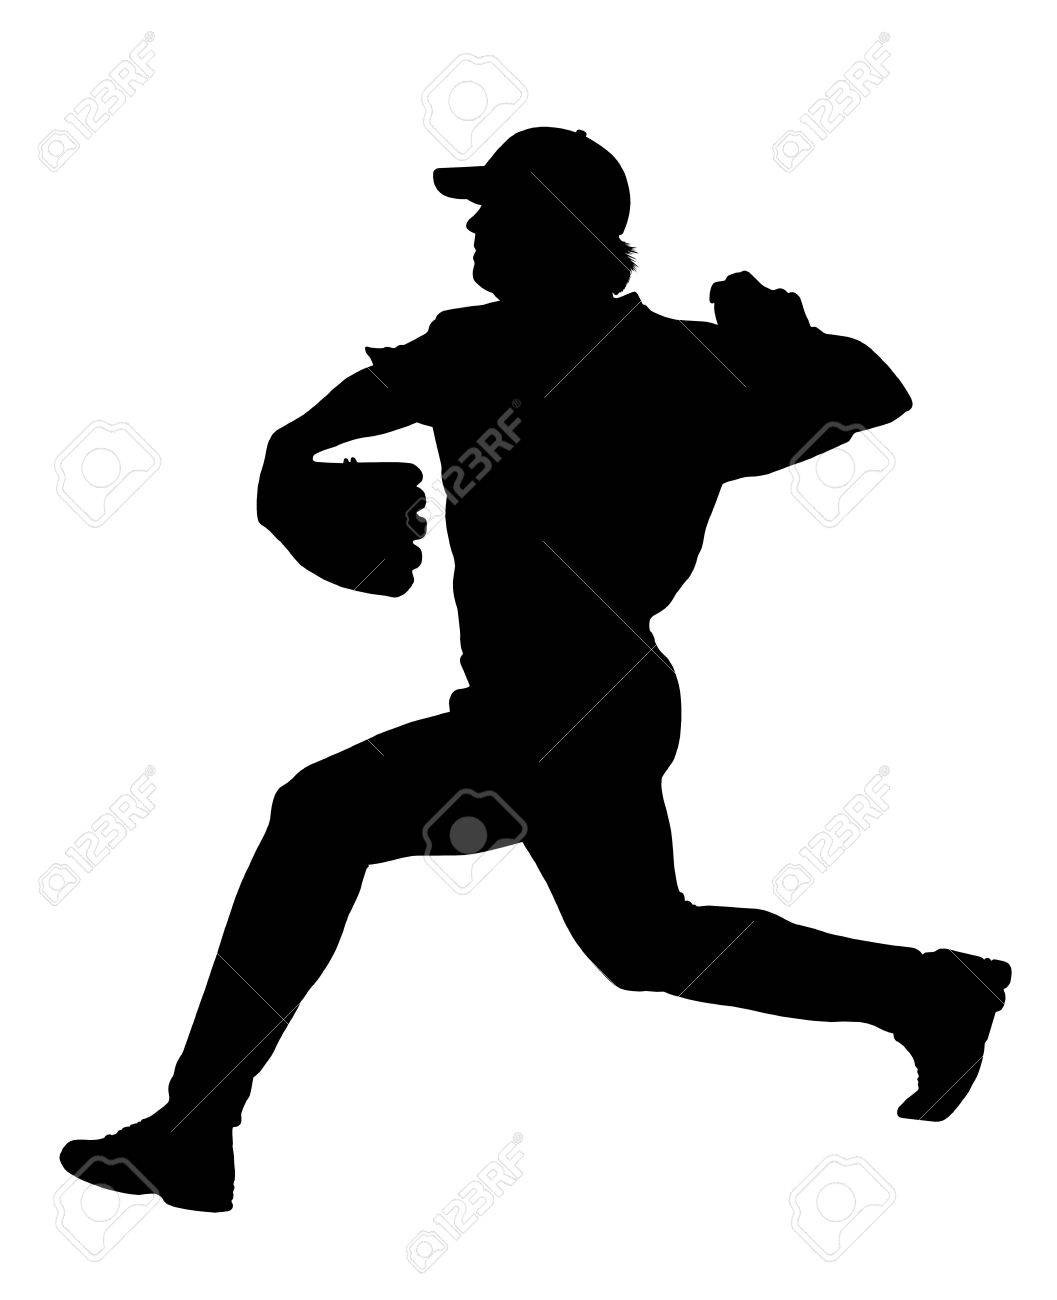 1057x1300 Baseball Silhouettes Collection 3 Royalty Free Vector Image